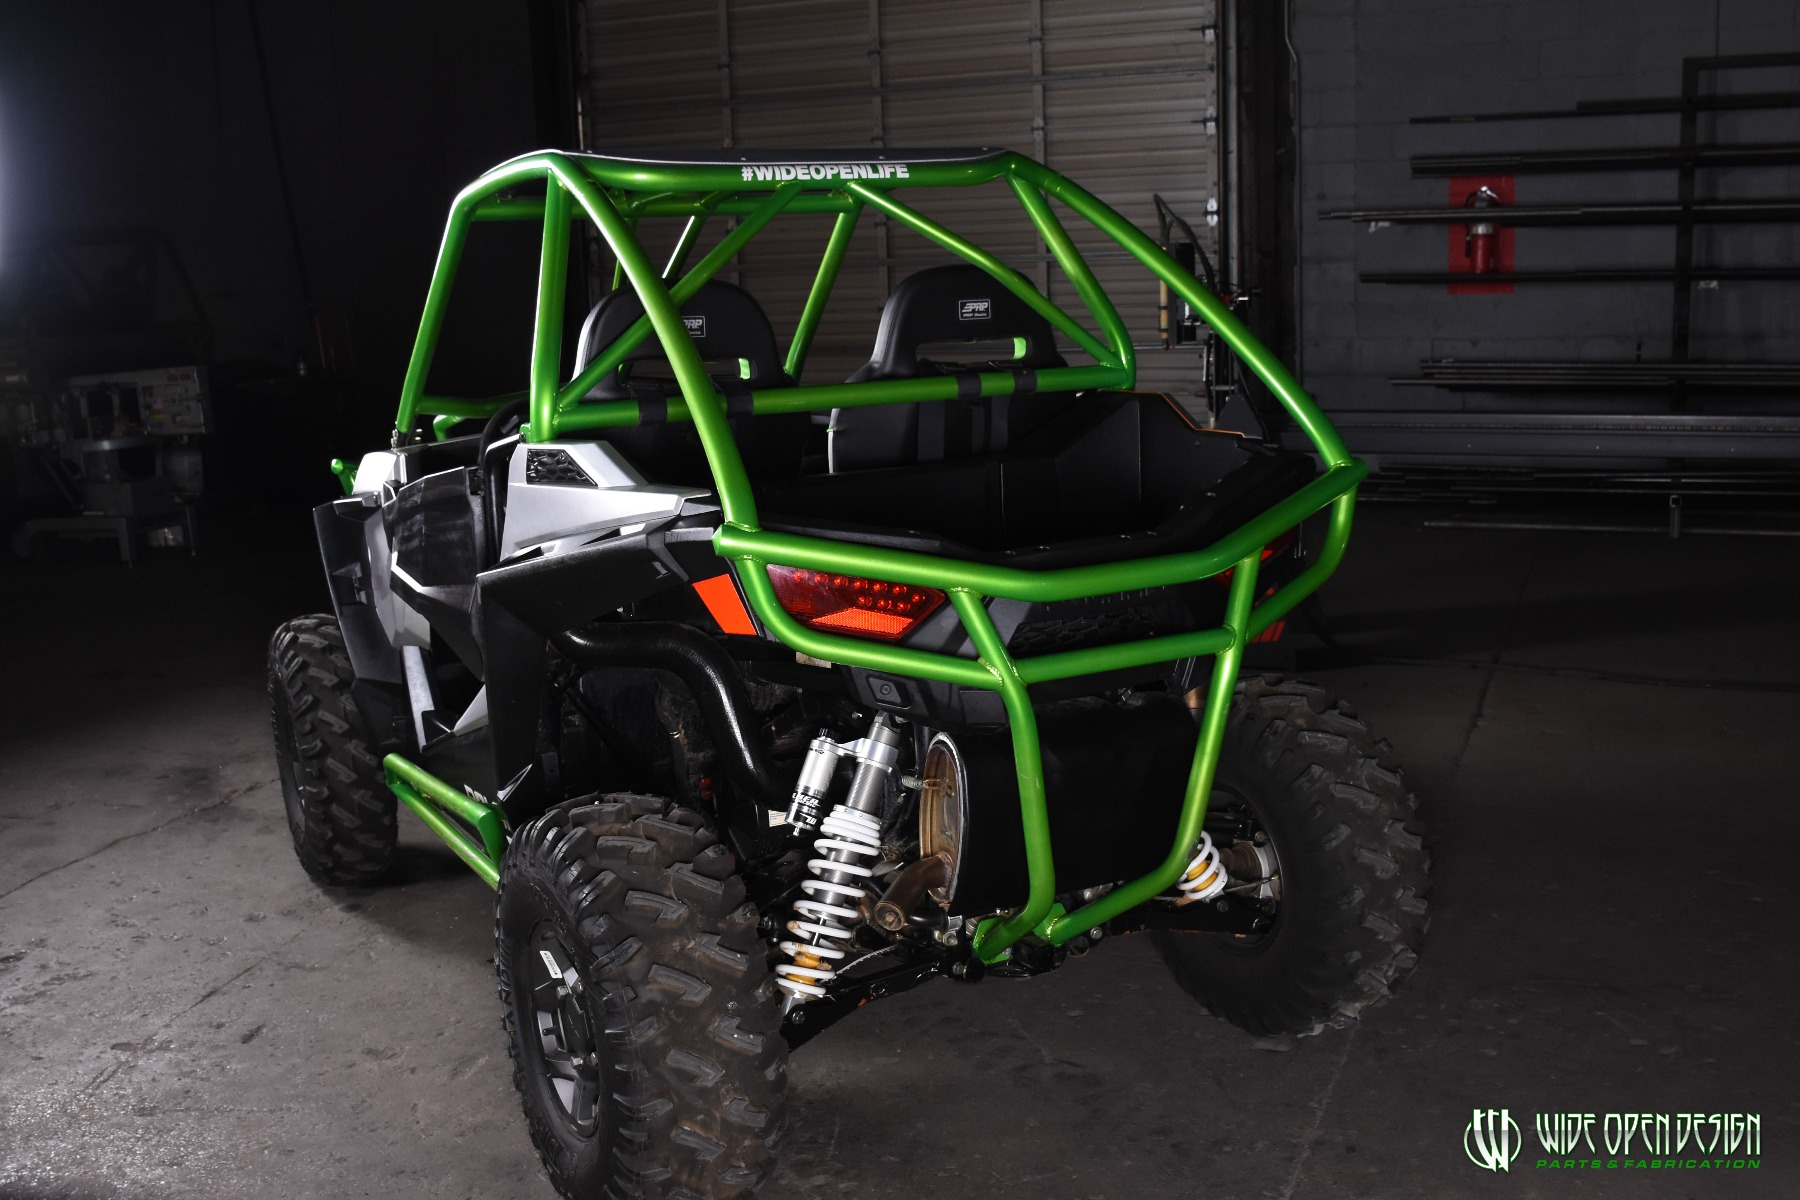 Jason's 1000s RZR with Wide Open Design Rolled Roof Cage, Front Bumper with Tie In, and Rocker Guards 25